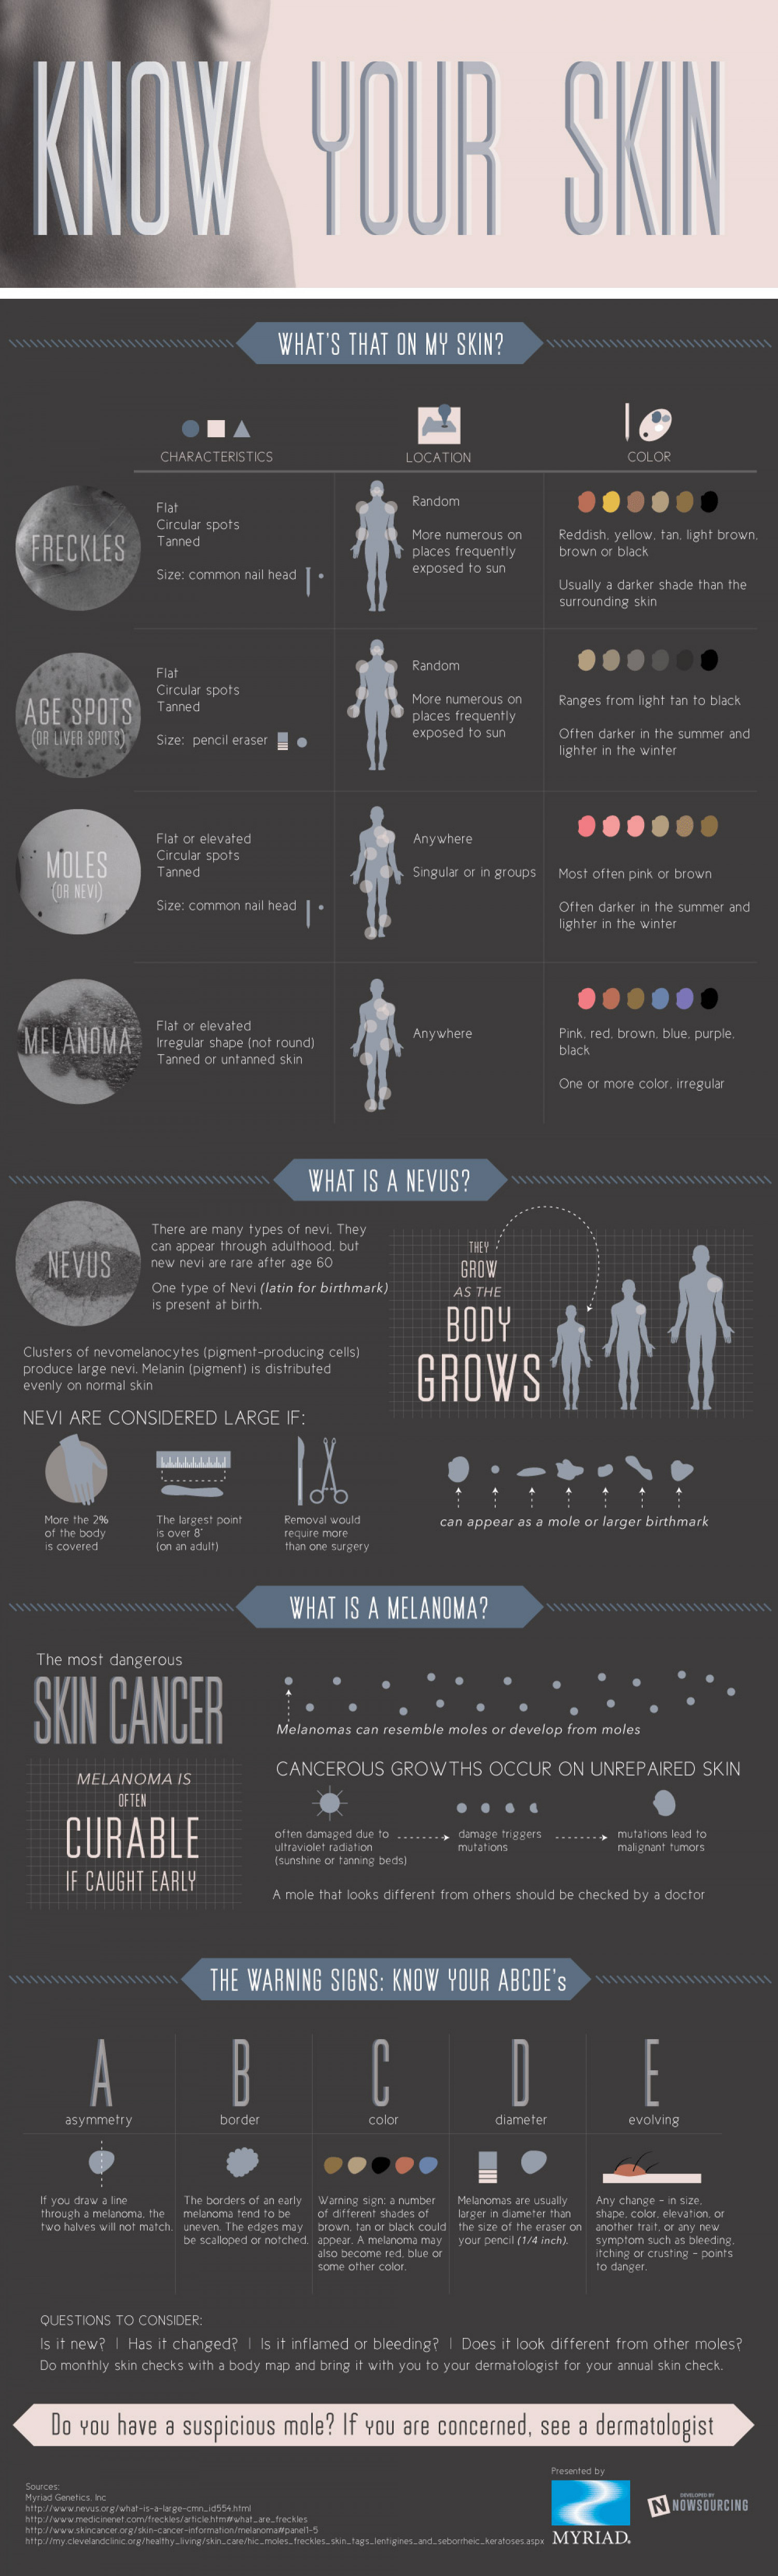 Know Your Skin Infographic